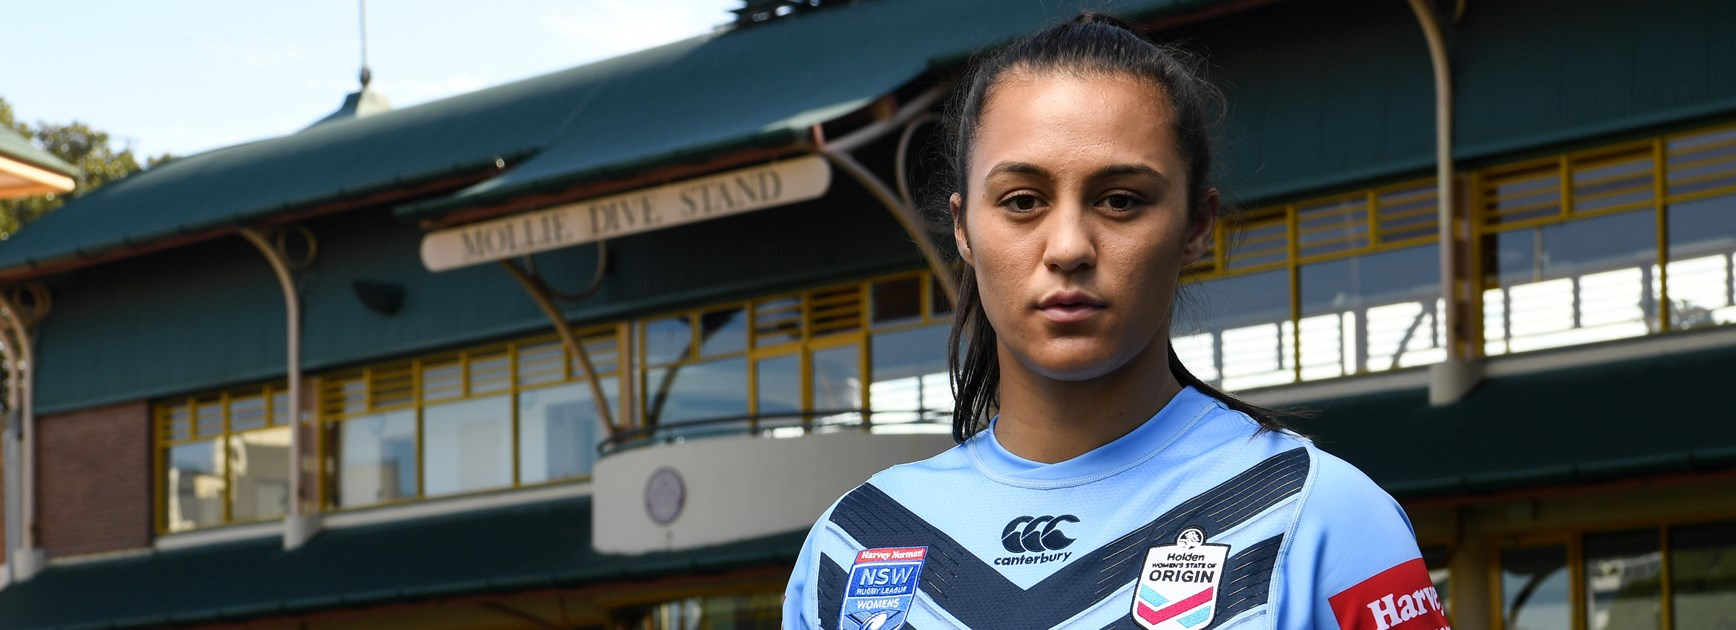 NSW Women's Origin team to showcase skills at holiday clinic